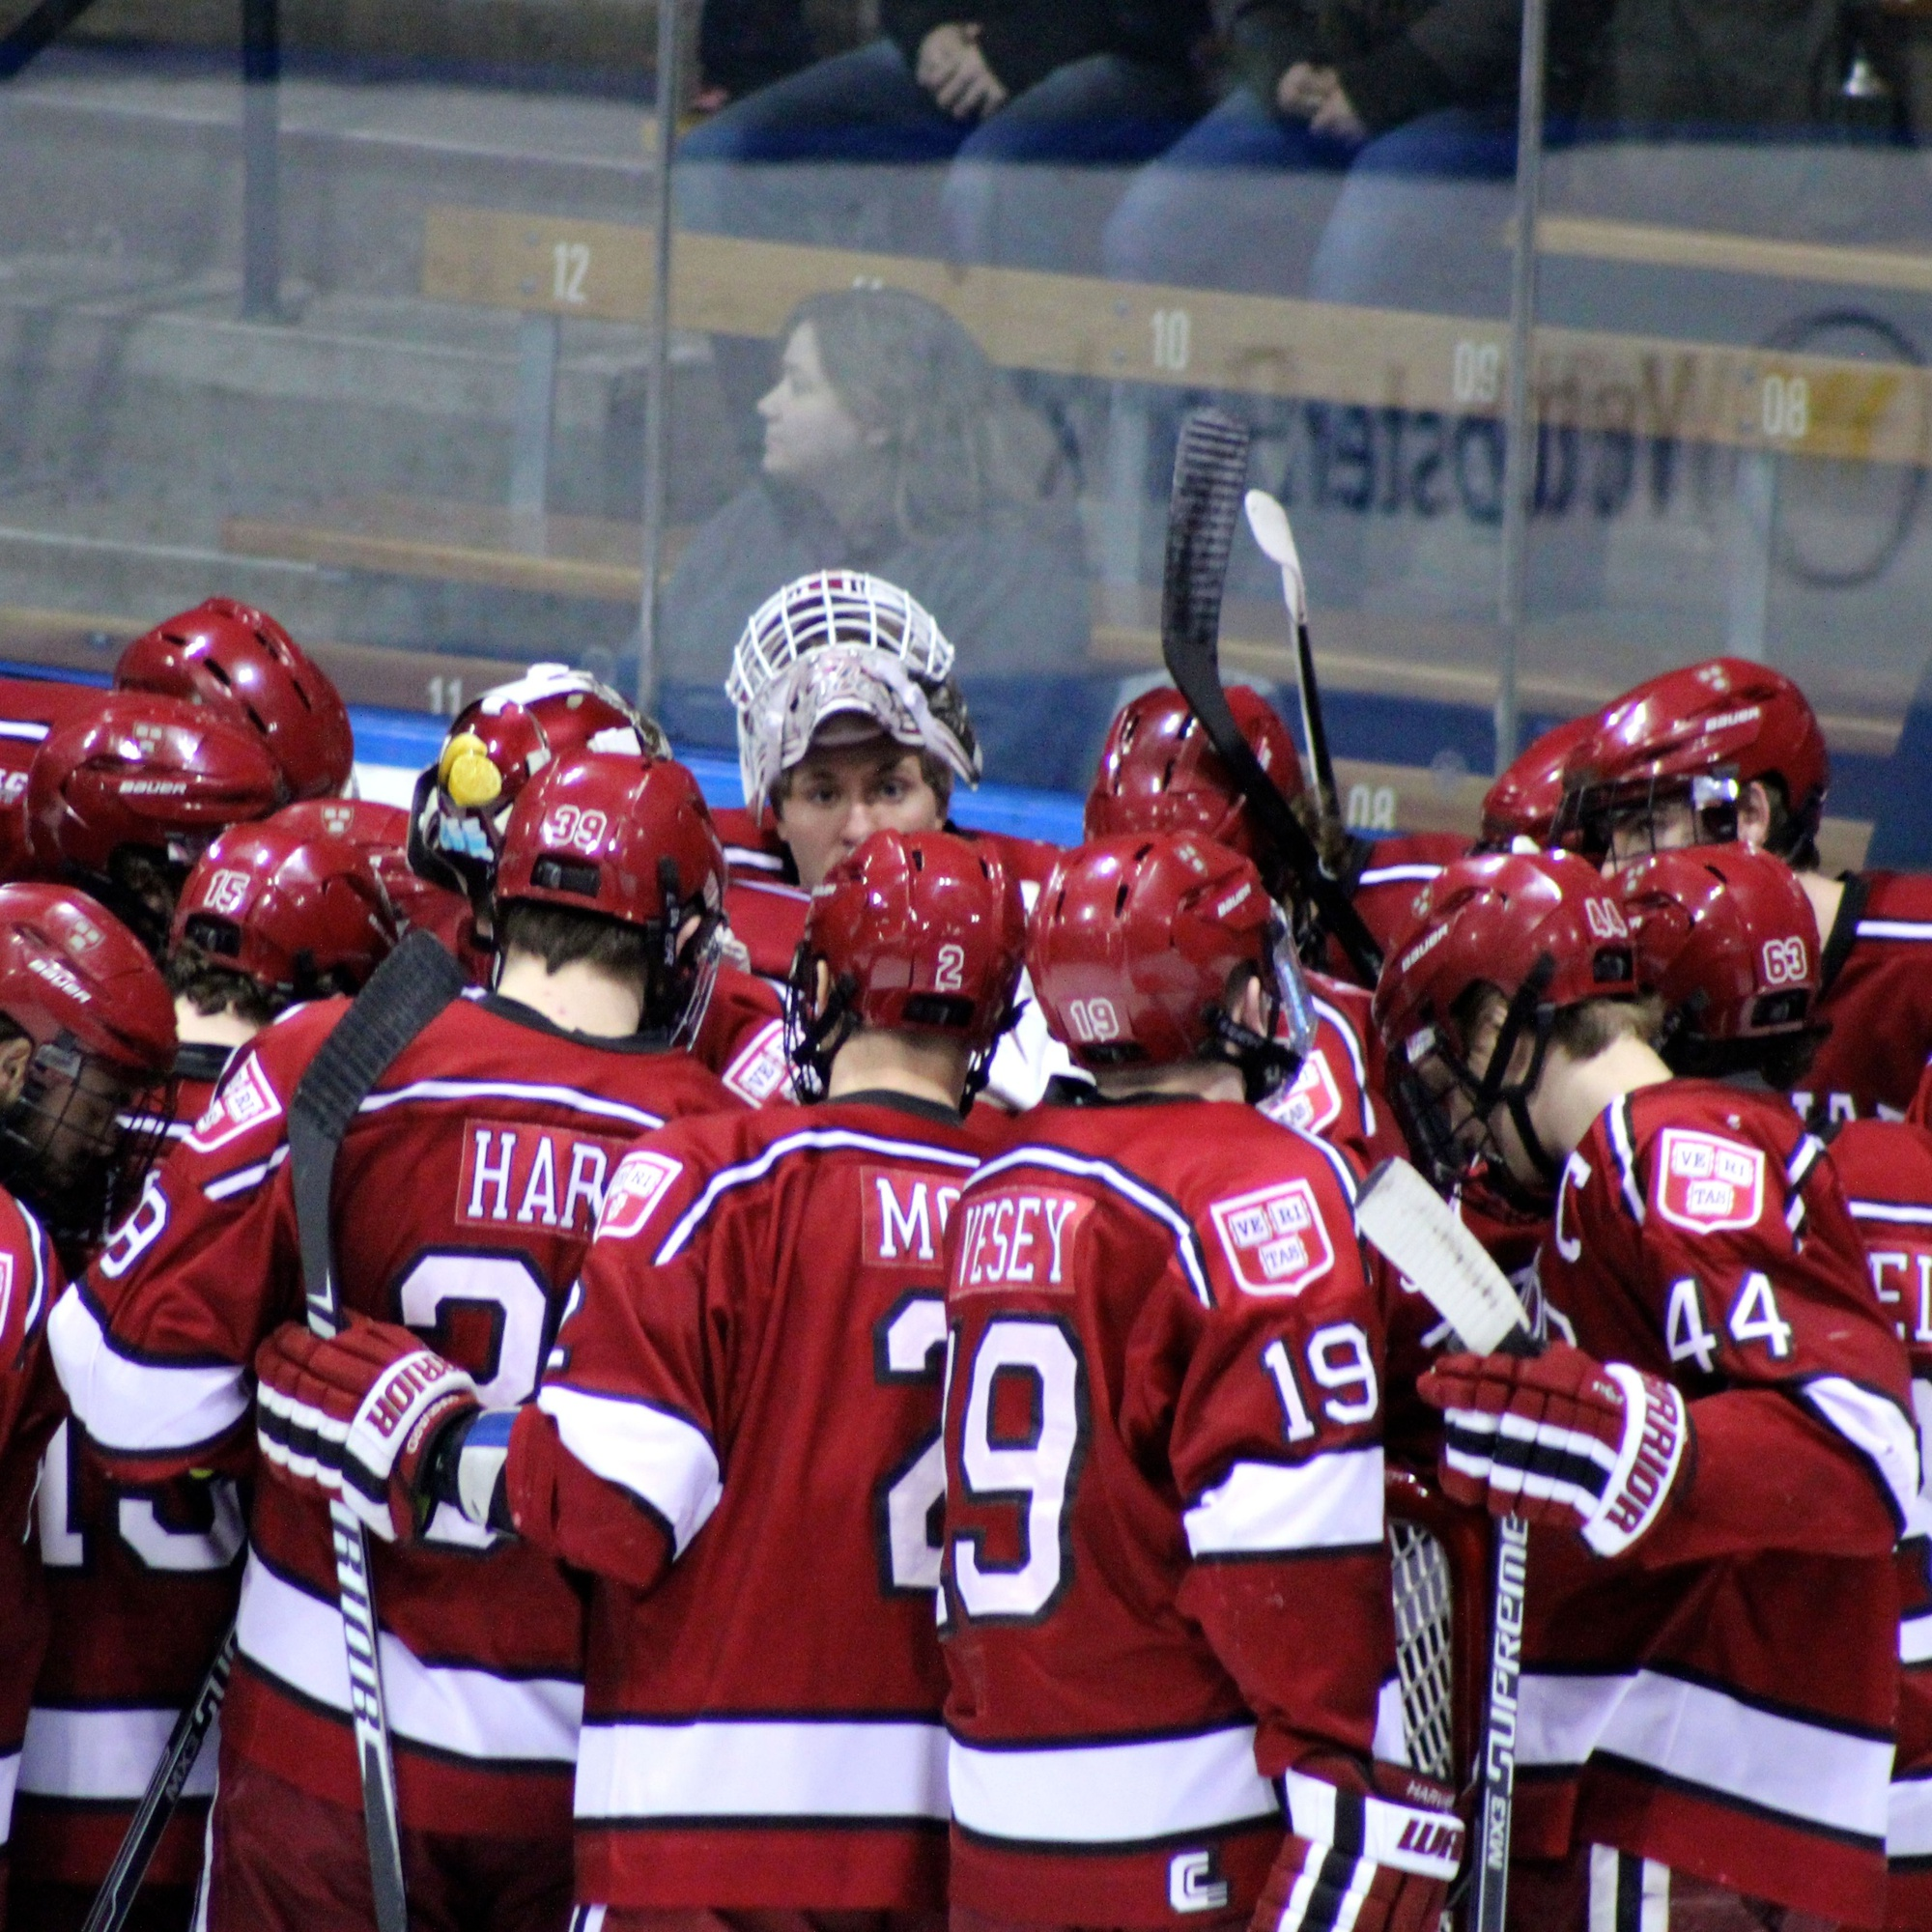 The Harvard men's ice hockey team beat Yale for the first time since March 2012 and won at Ingalls Rink for the first time since January 2005.